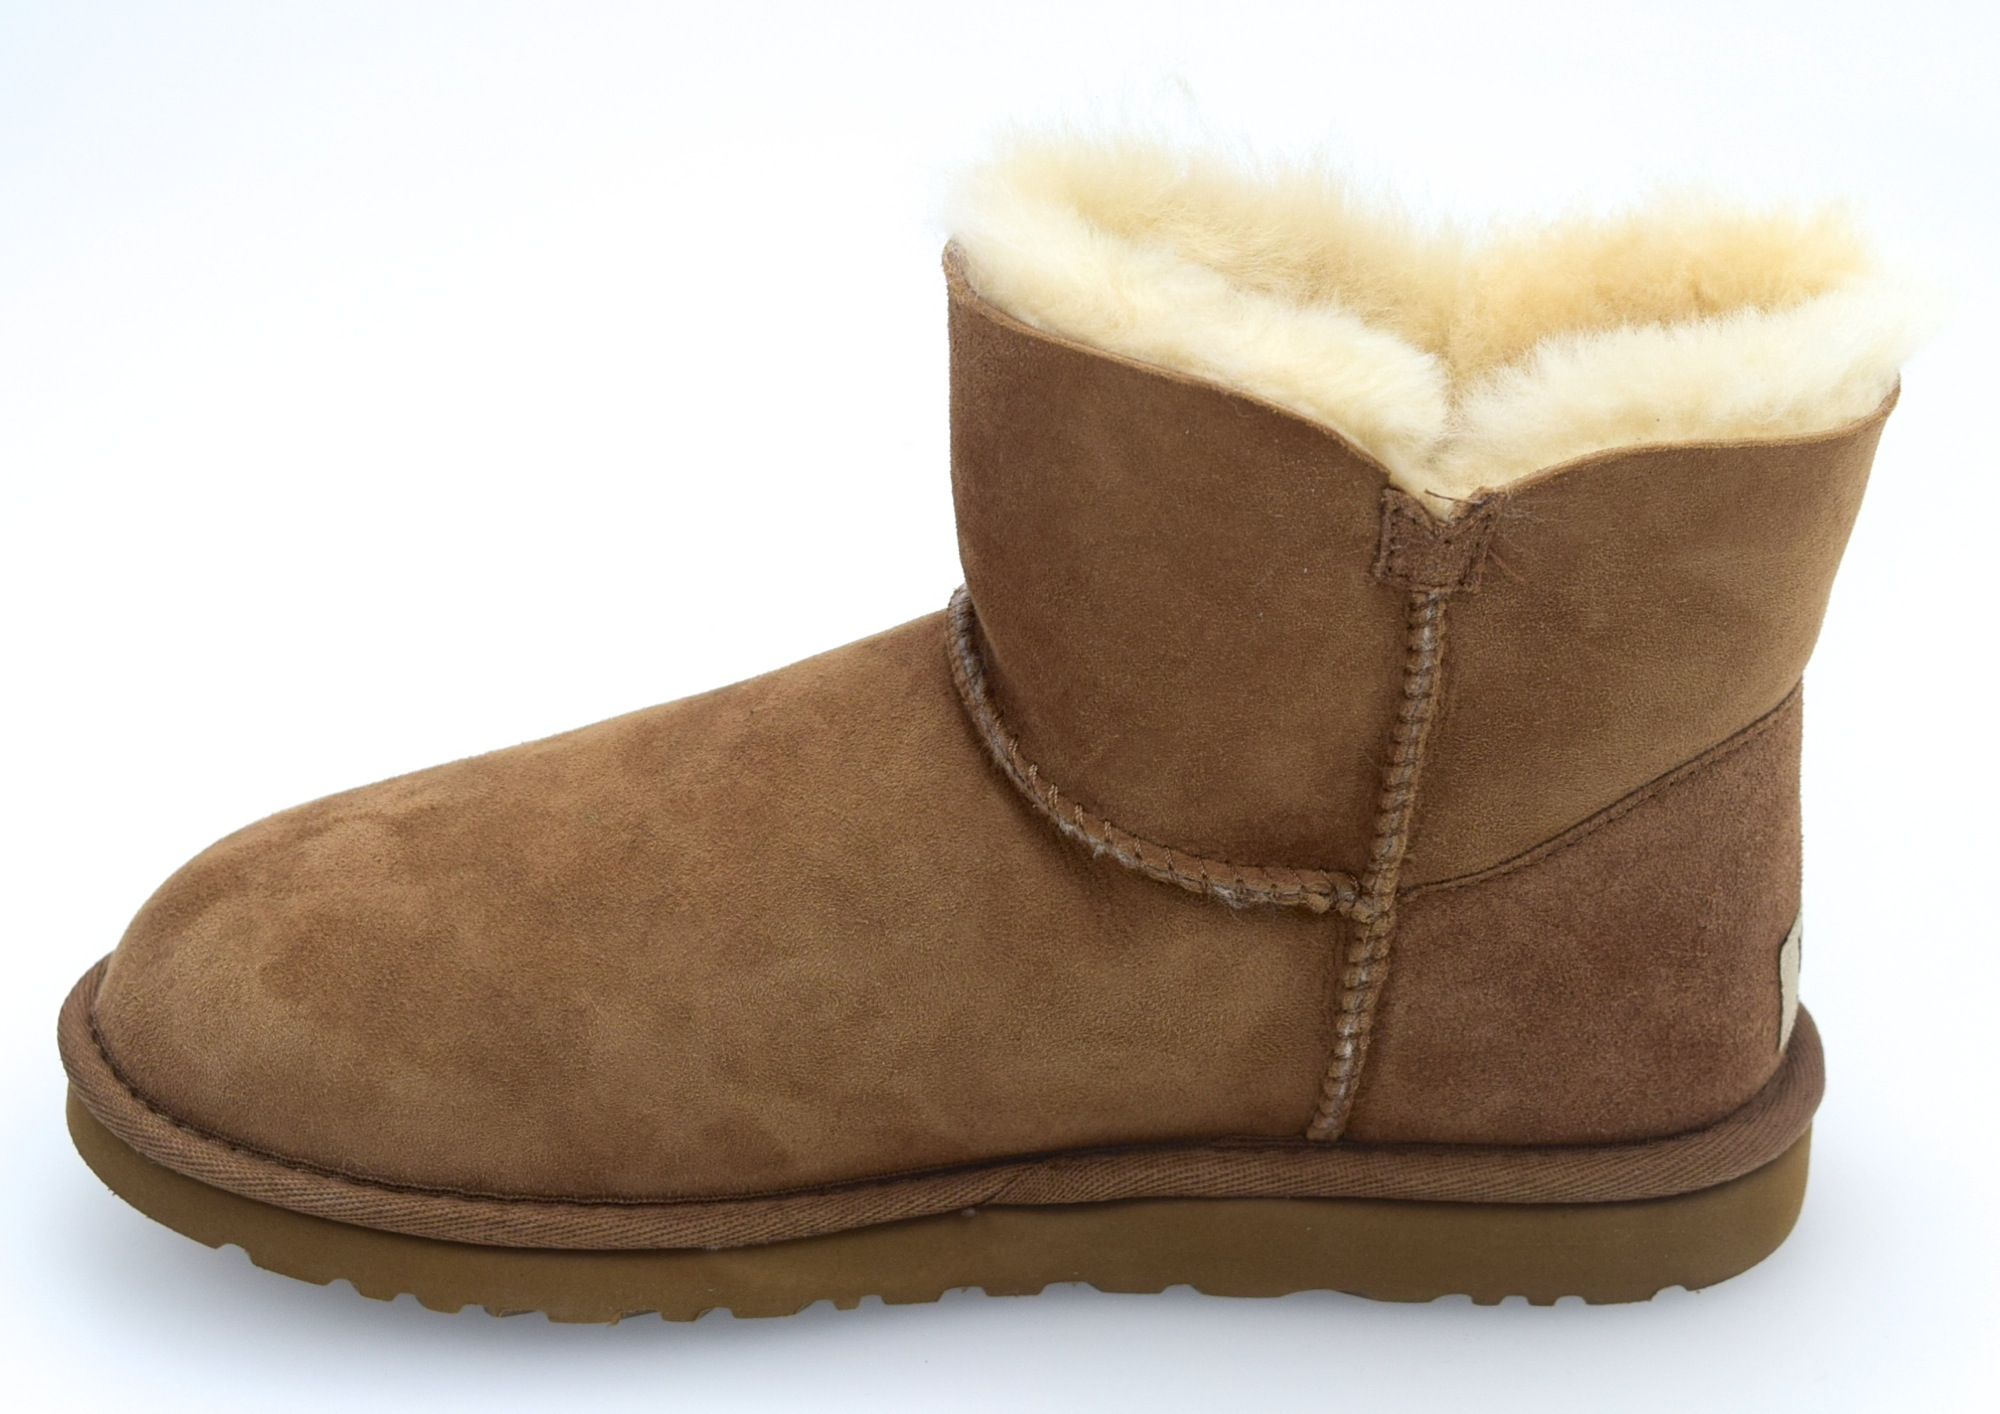 89efc7a0036 Ugg Boots Mini Bailey Button 35 - cheap watches mgc-gas.com